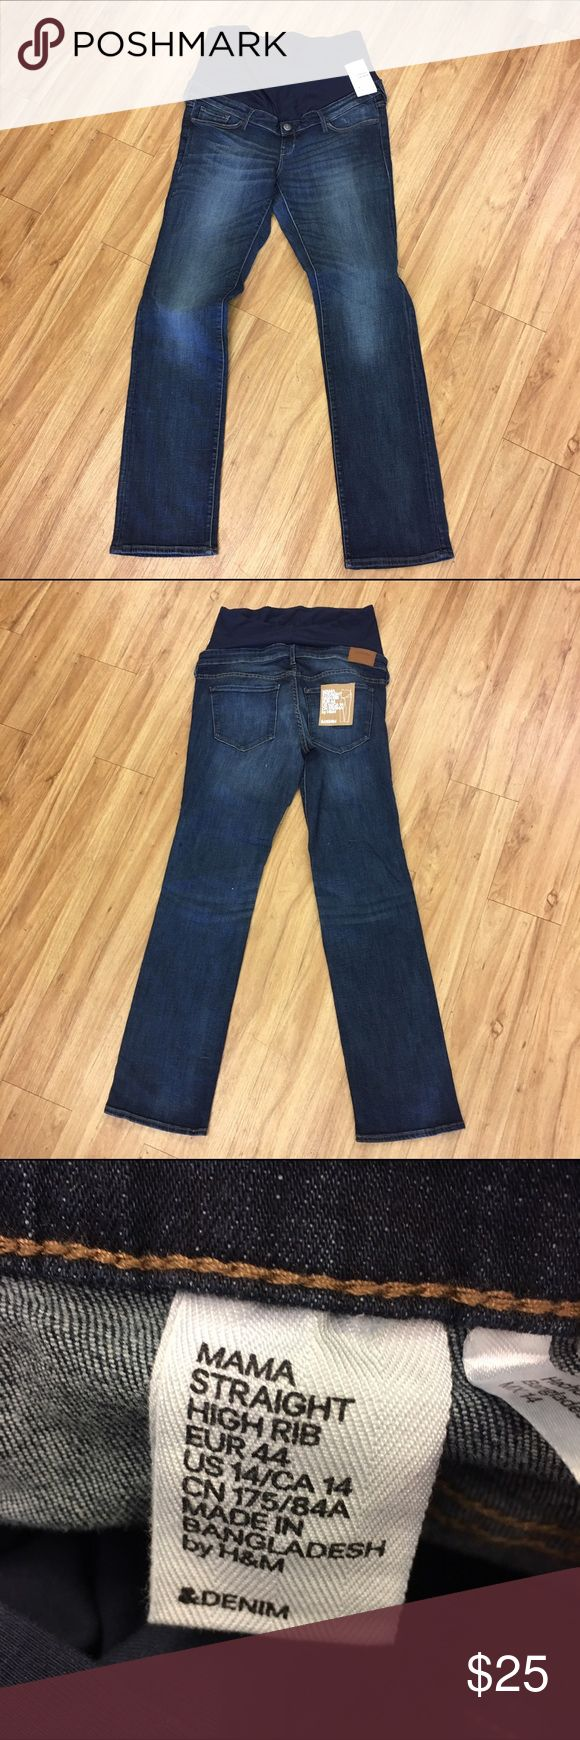 H&M Mama Maternity Jeans NEW NWT 14 H&M Mama Maternity Jeans NEW NWT 14  Straight, high rib.  From the &Denim line.  New with tags.  Look like a regular pair of jeans with five pockets and a faux fly and button.  Knit tummy panel.  #new #nwt #jeans #maternityjeans #denim #blue #handmmama #straight #highrib H&M Jeans Straight Leg